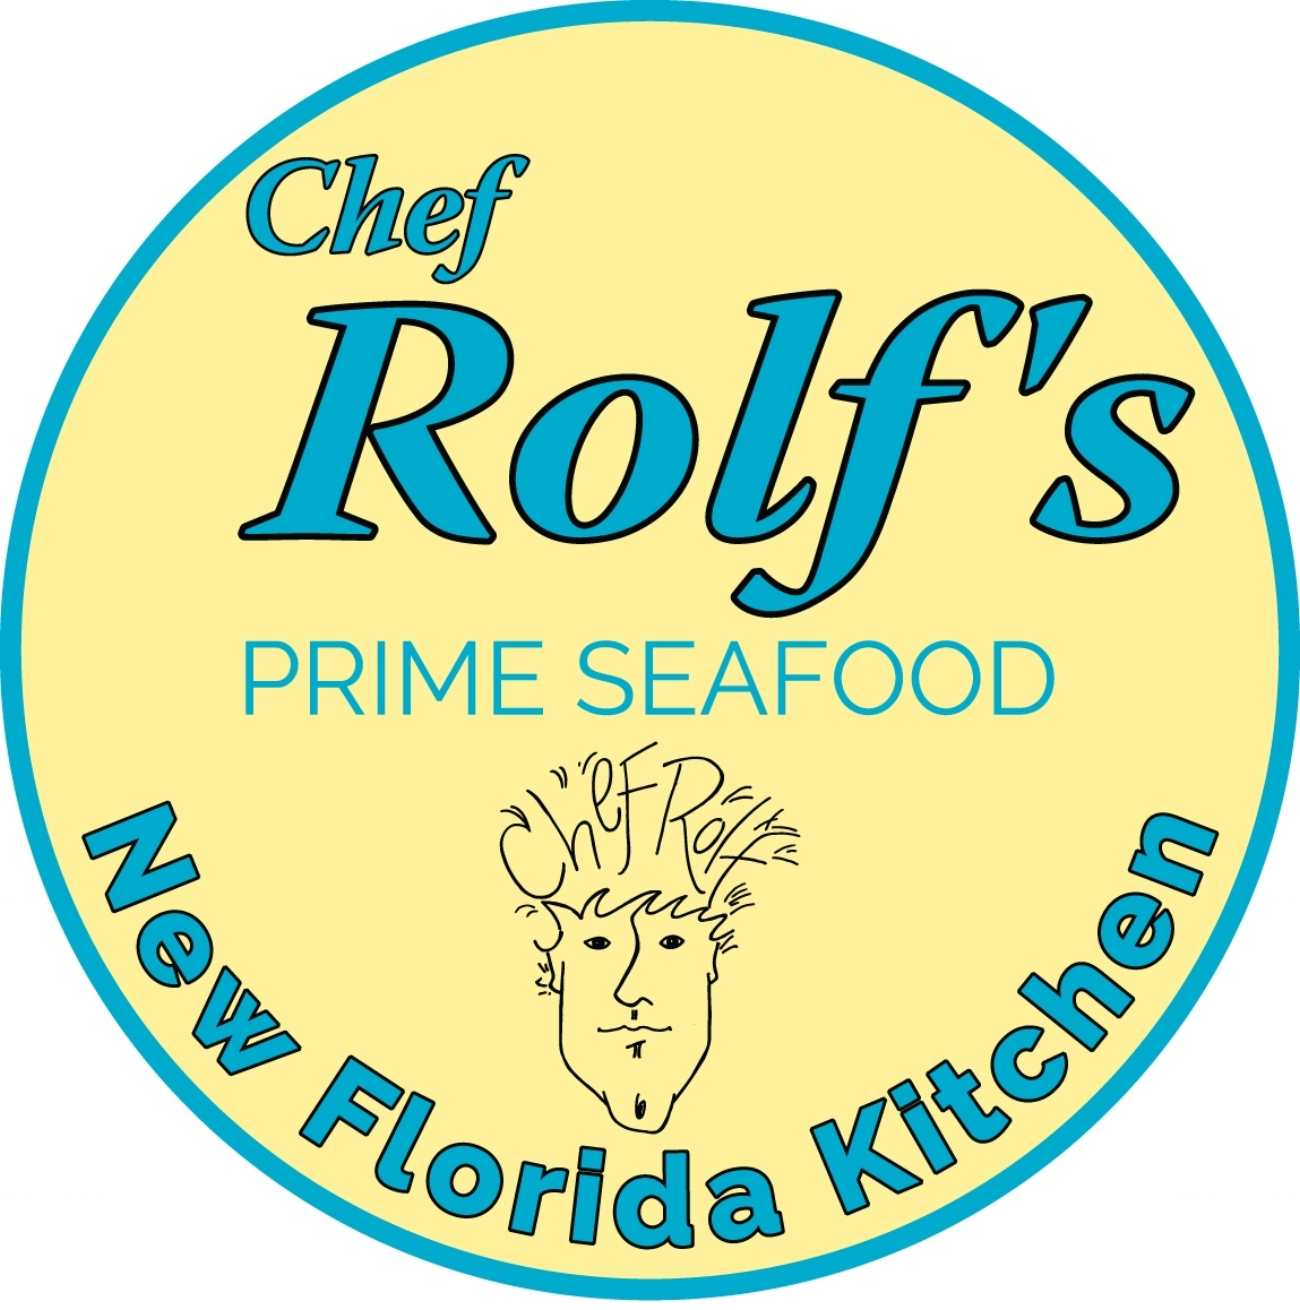 Chef Rolf's   New Florida Kitchen